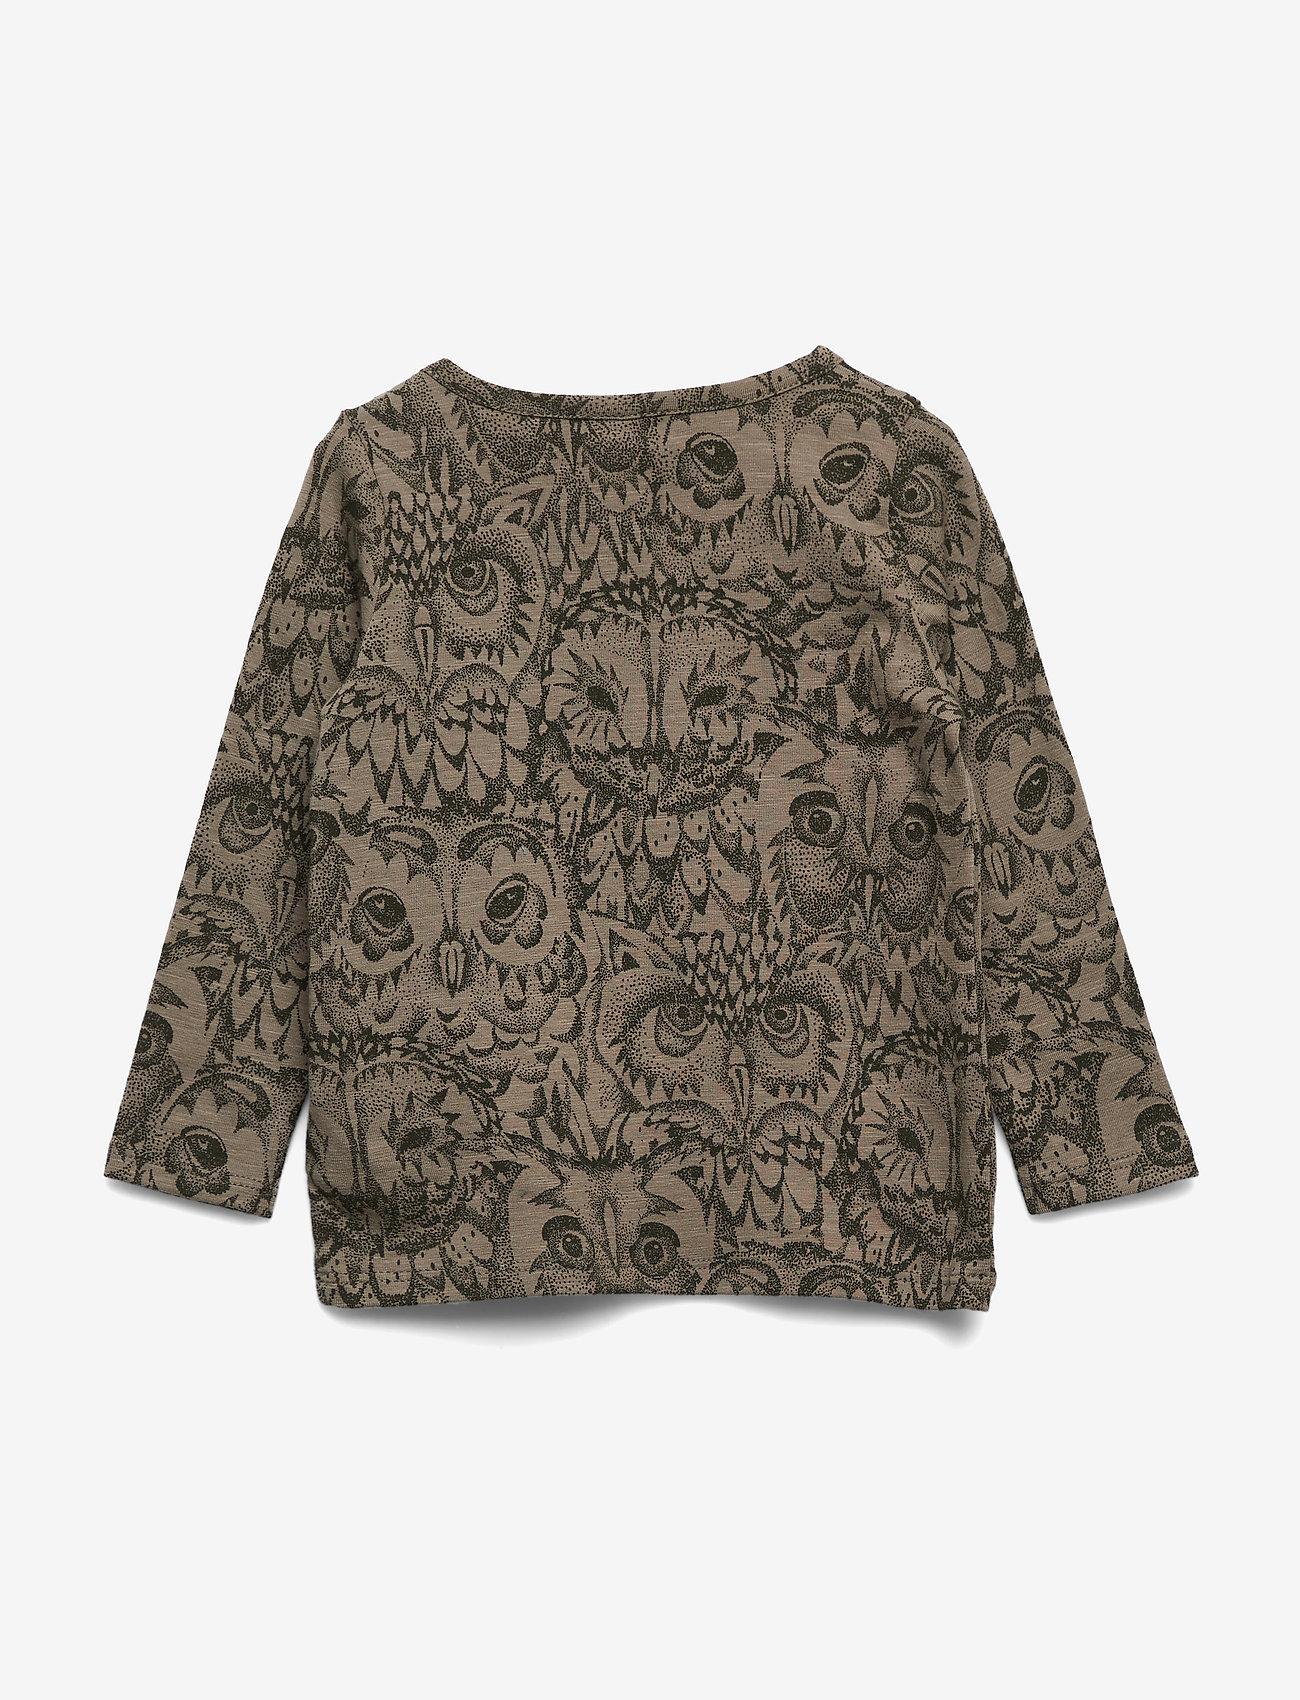 Baby Bella T-shirt (Vetiver Aop Owl Vetiver) (17.52 €) - Soft Gallery oeNxf